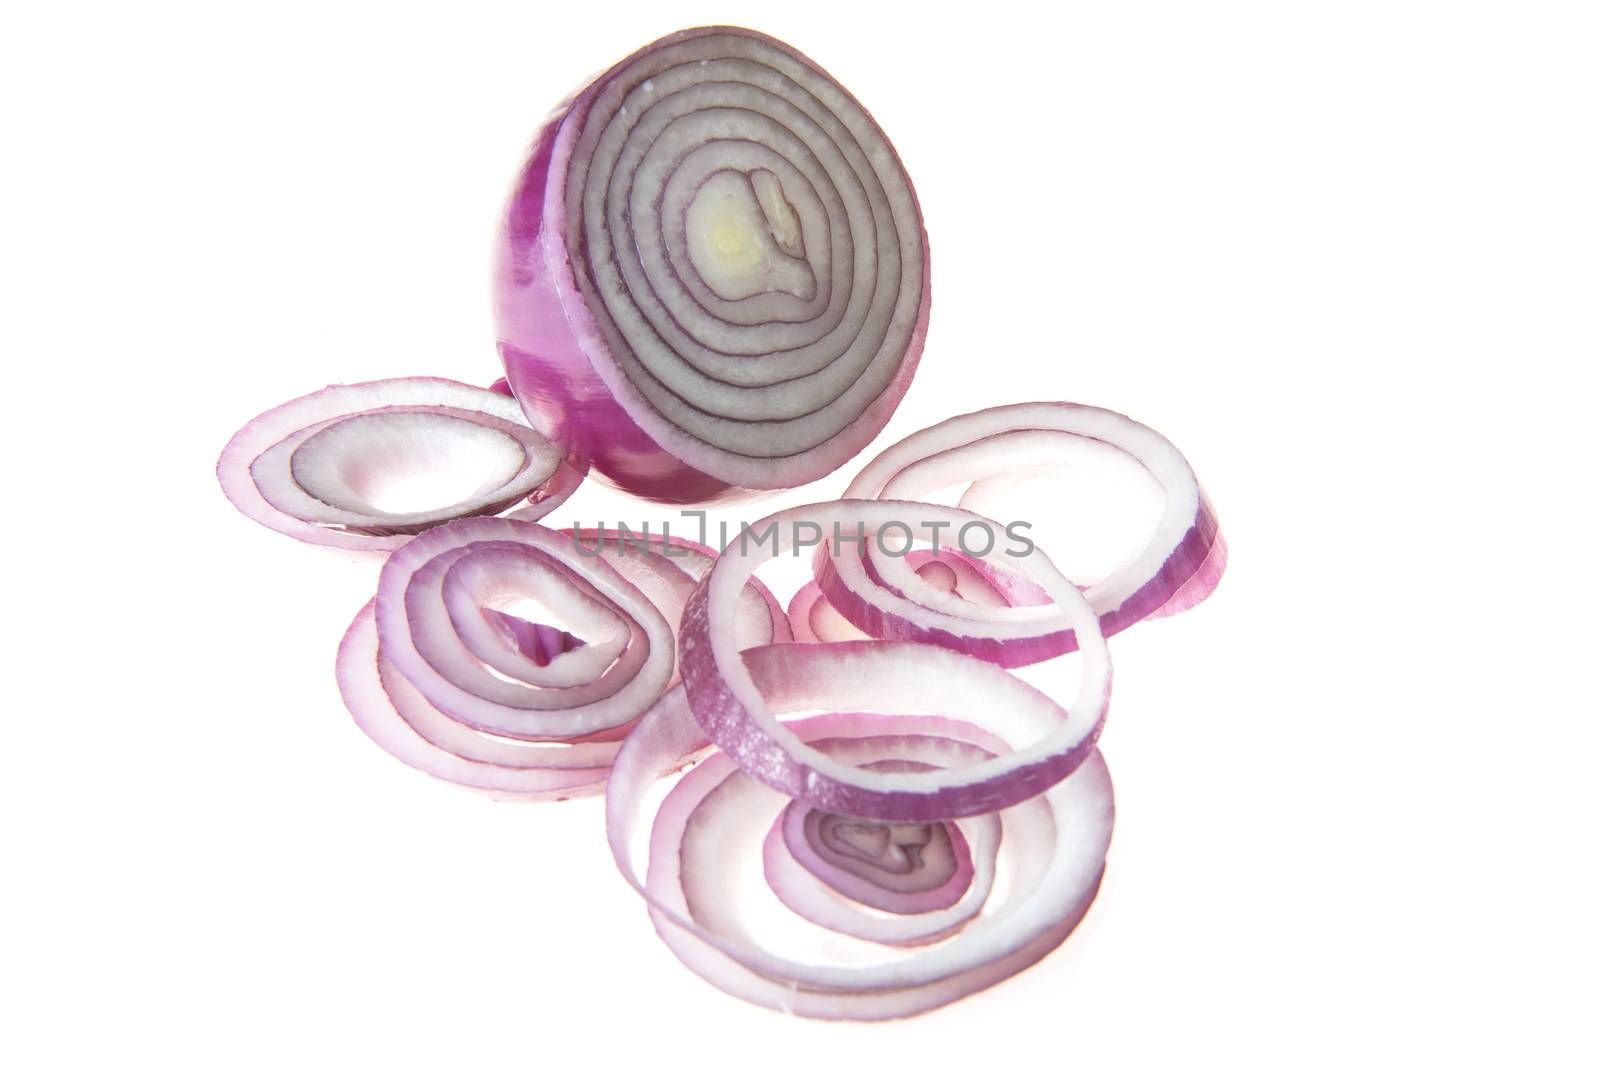 Raw red sliced onion over white background.